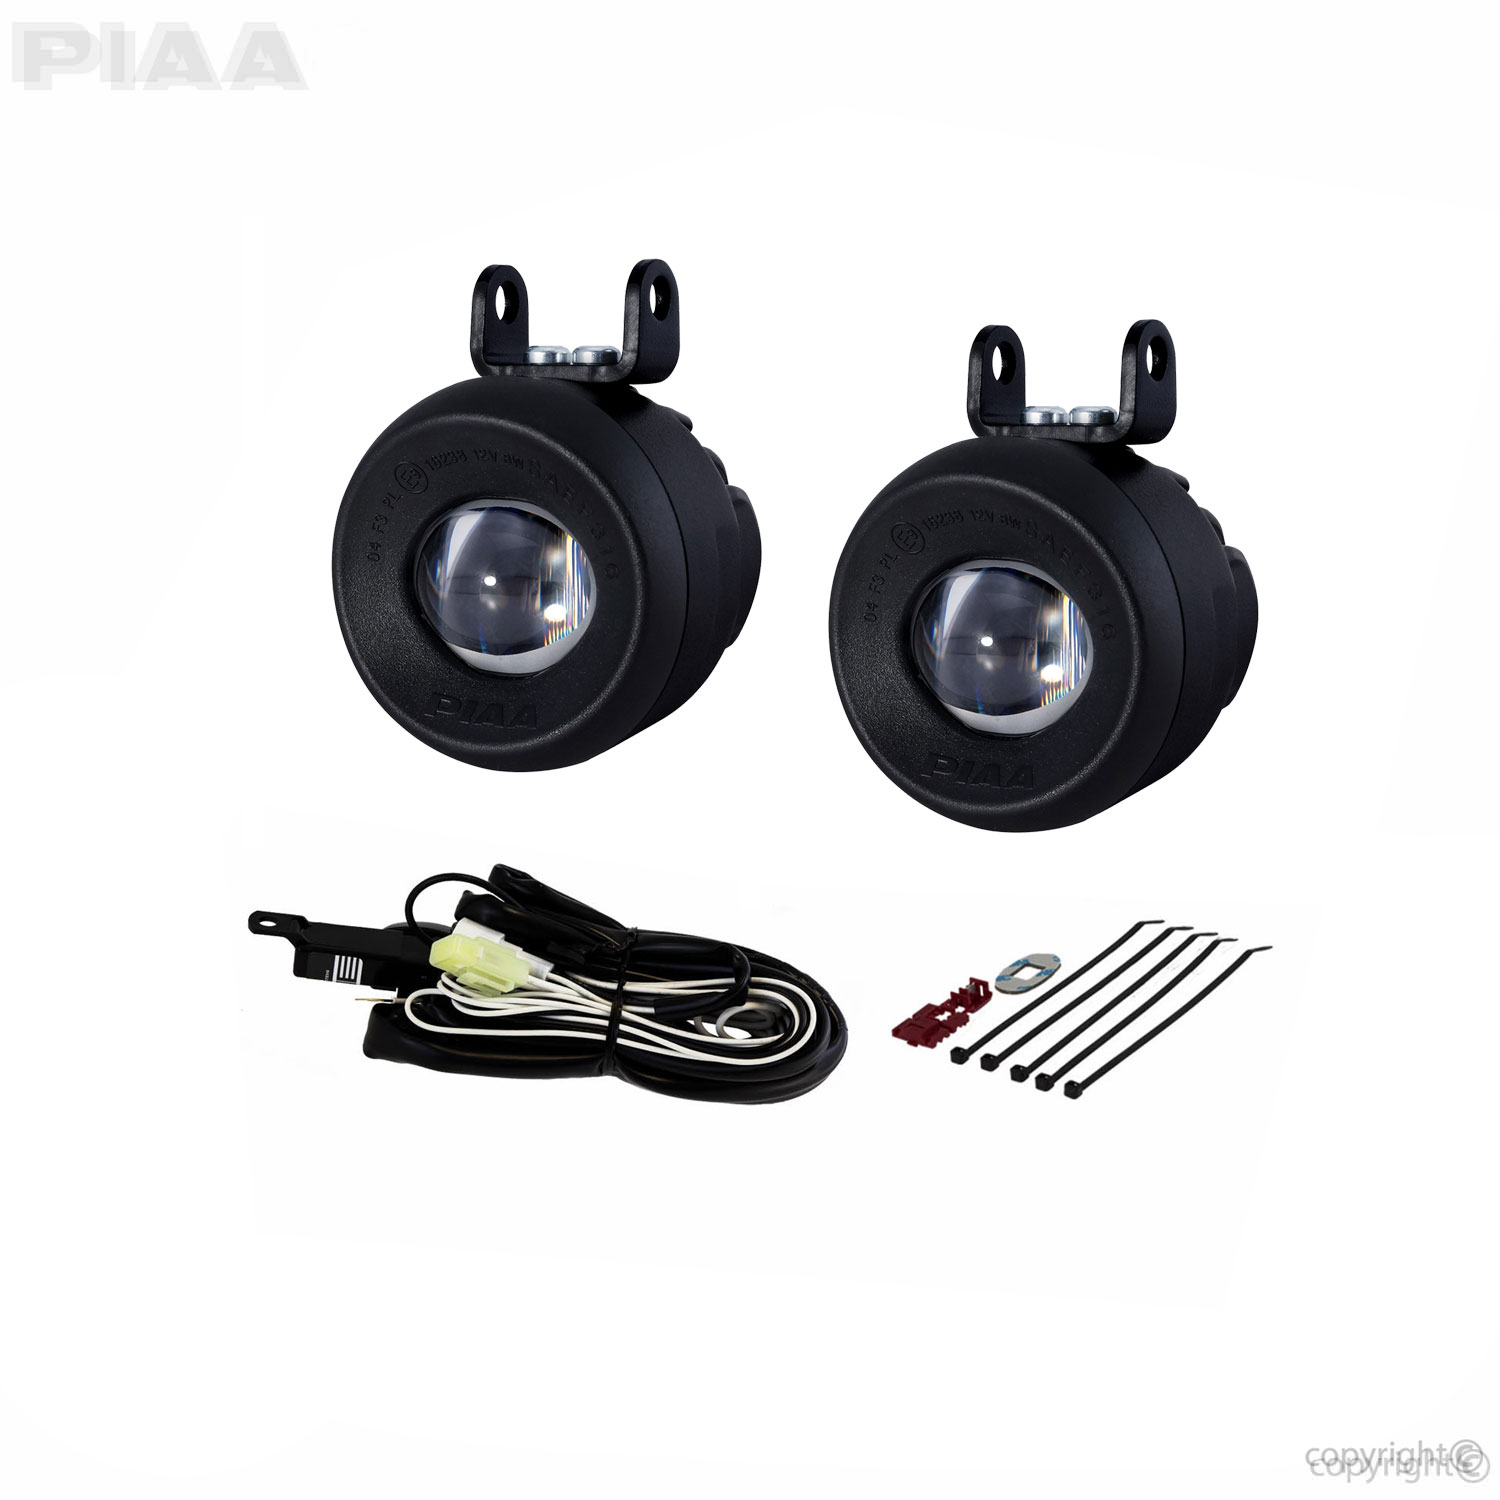 Wiring Diagram For Piaa Lights Page 2 And Schematics 1100 Lamp Led Bmw Motorcycles Rh Com Western Snow Plow